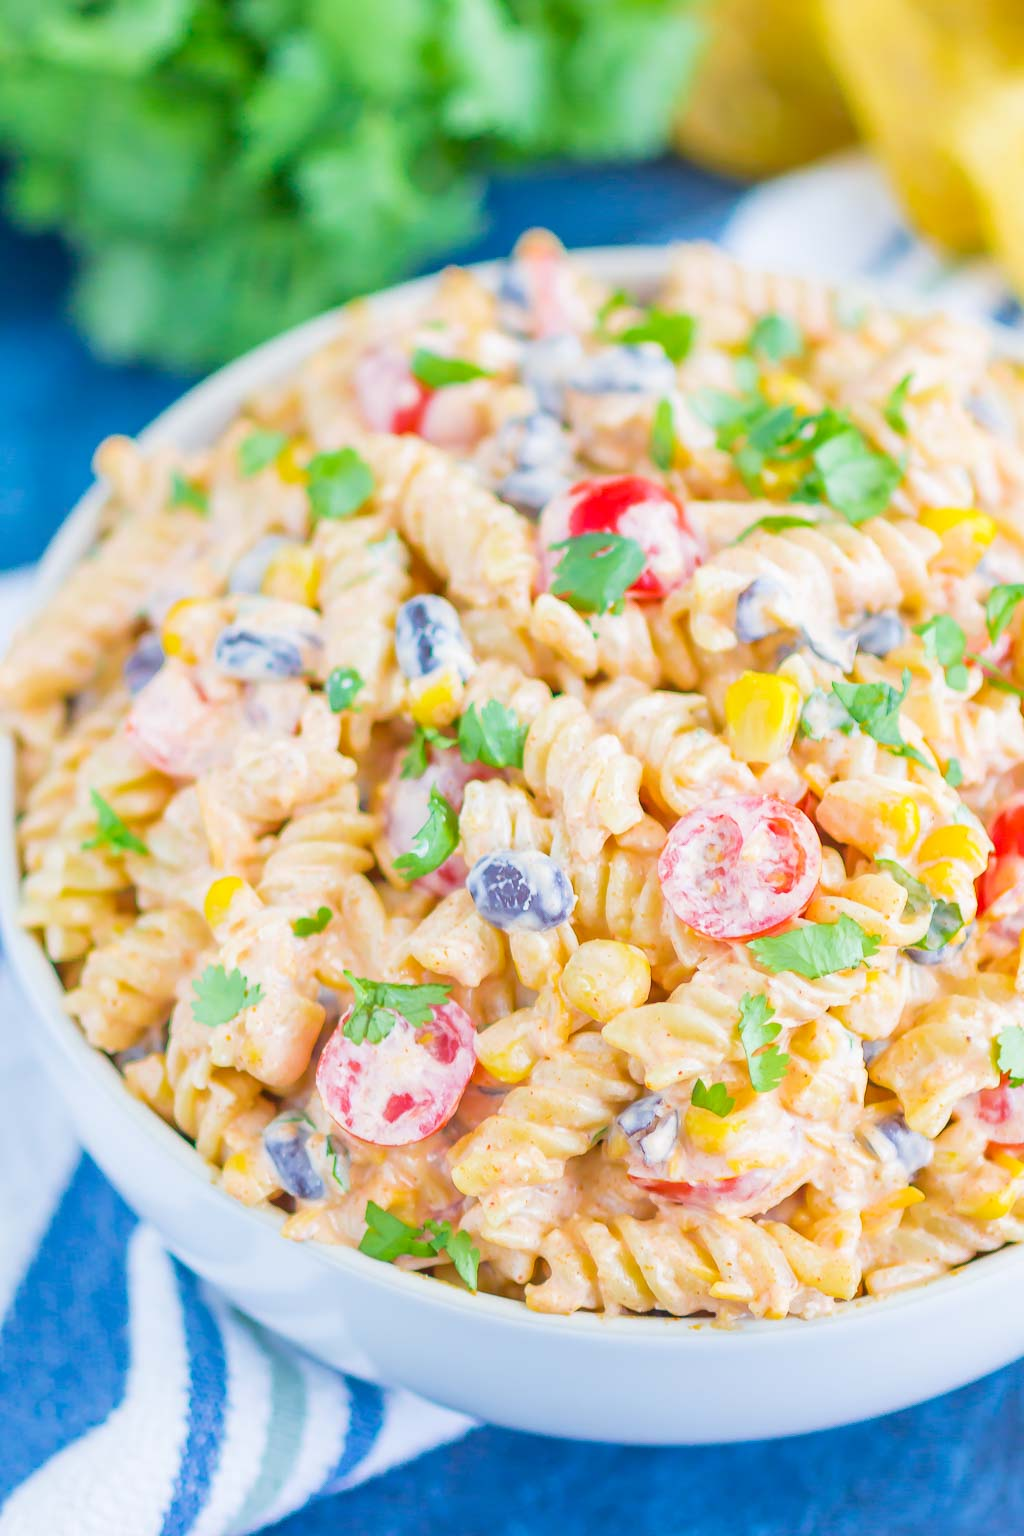 Taco Pasta Salad is loaded with Mexican flavors and ready in no time. With a creamy, zesty dressing and all of your favorite toppings, this easy pasta salad is perfect for your next party!